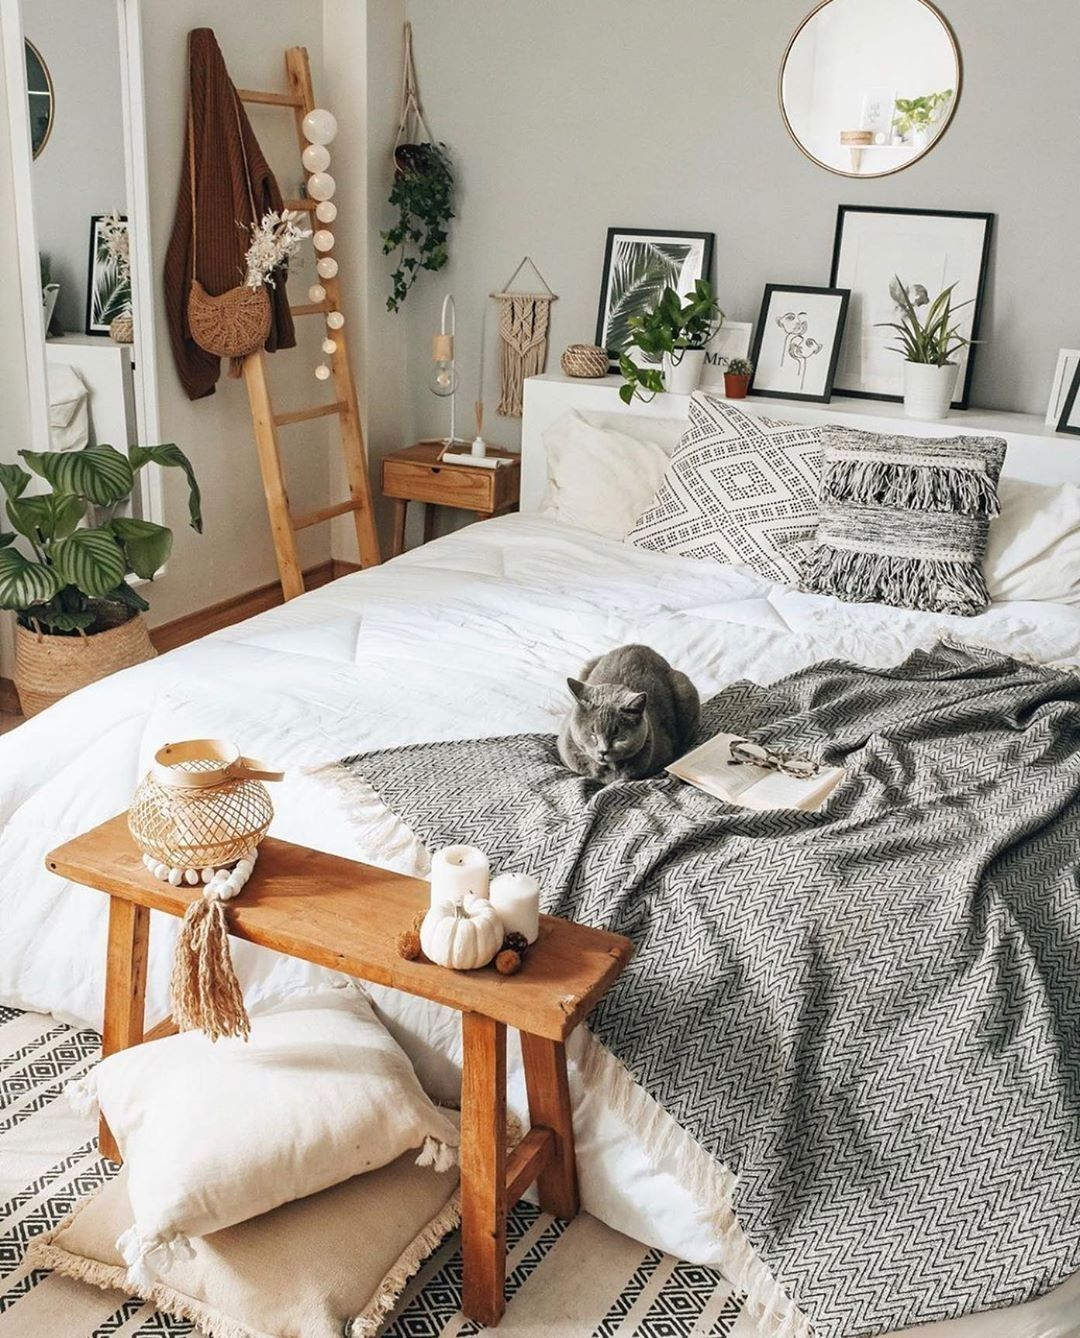 20 Pretty Bohemian Style Decorating Ideas For New And Reliable Inspirations In 2020 Bedroom Decor Room Decor Bedroom Bedroom Decor Design #urban #boho #living #room